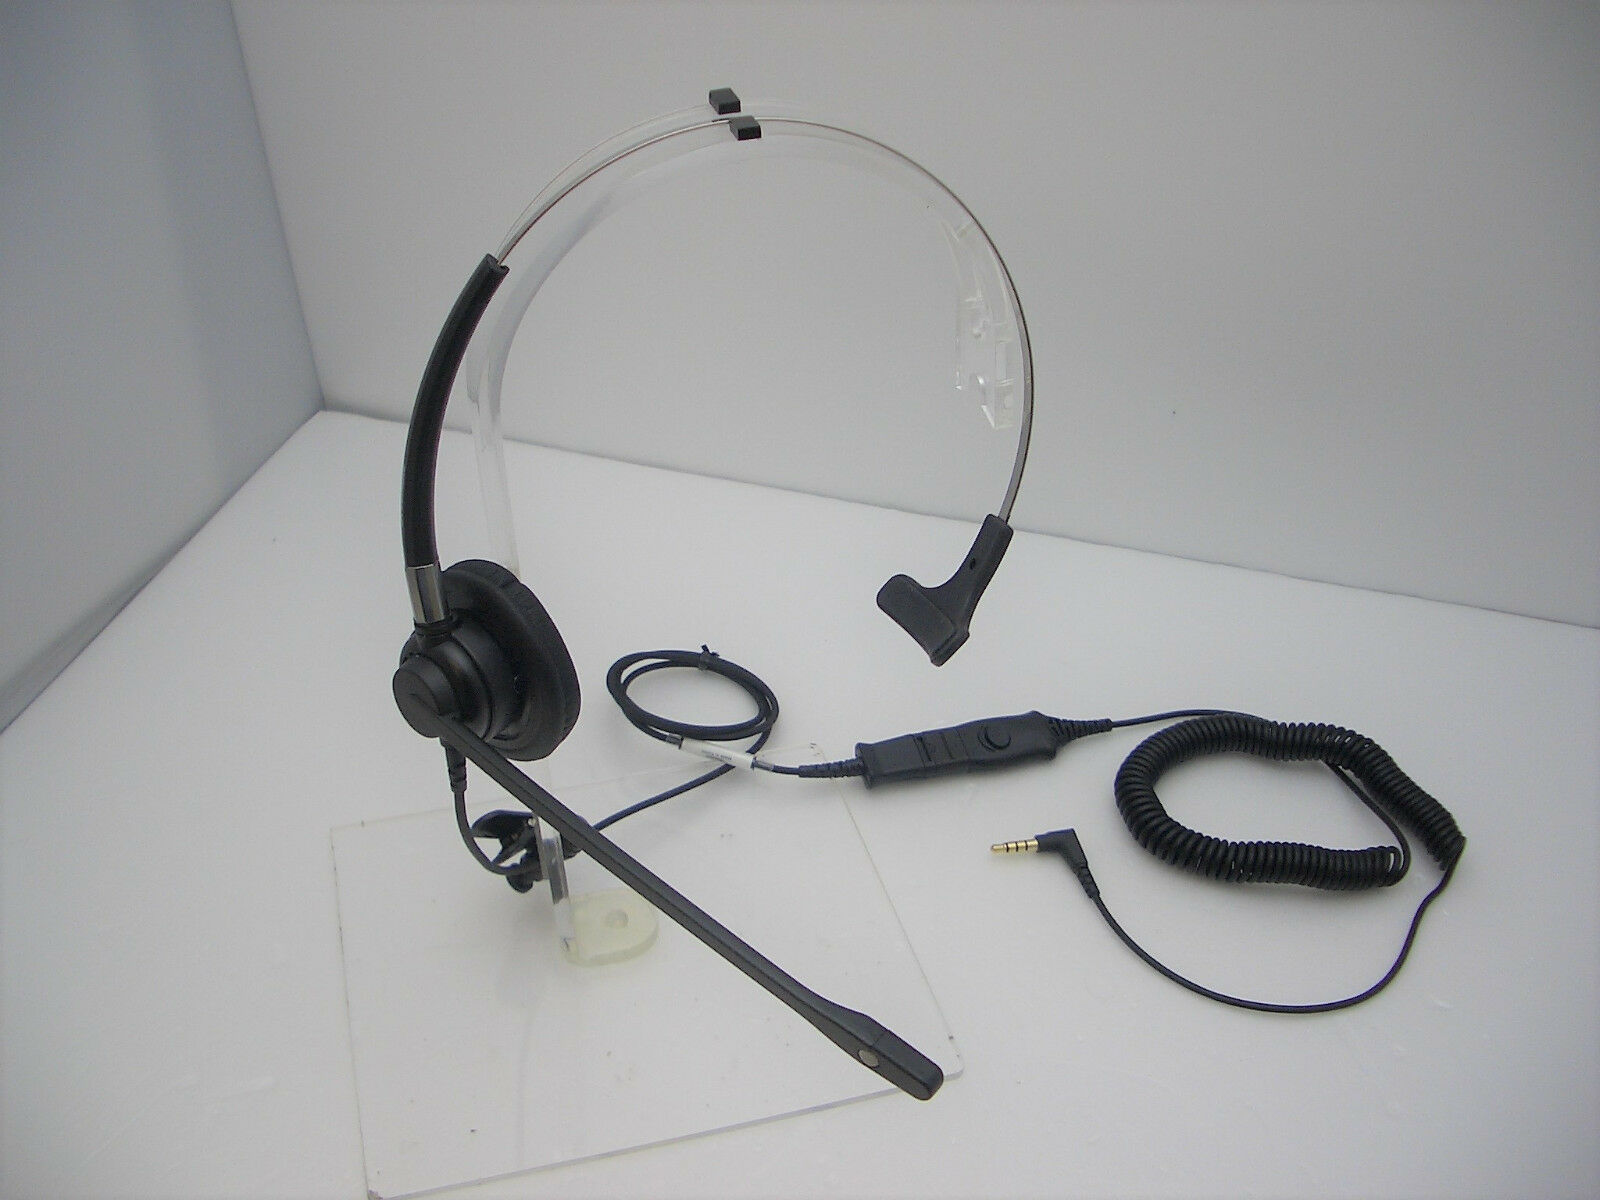 Details about FM300 Mono Headset for iPhone Samsung Blackberry LG HTC 3.5mm jack mobile phone